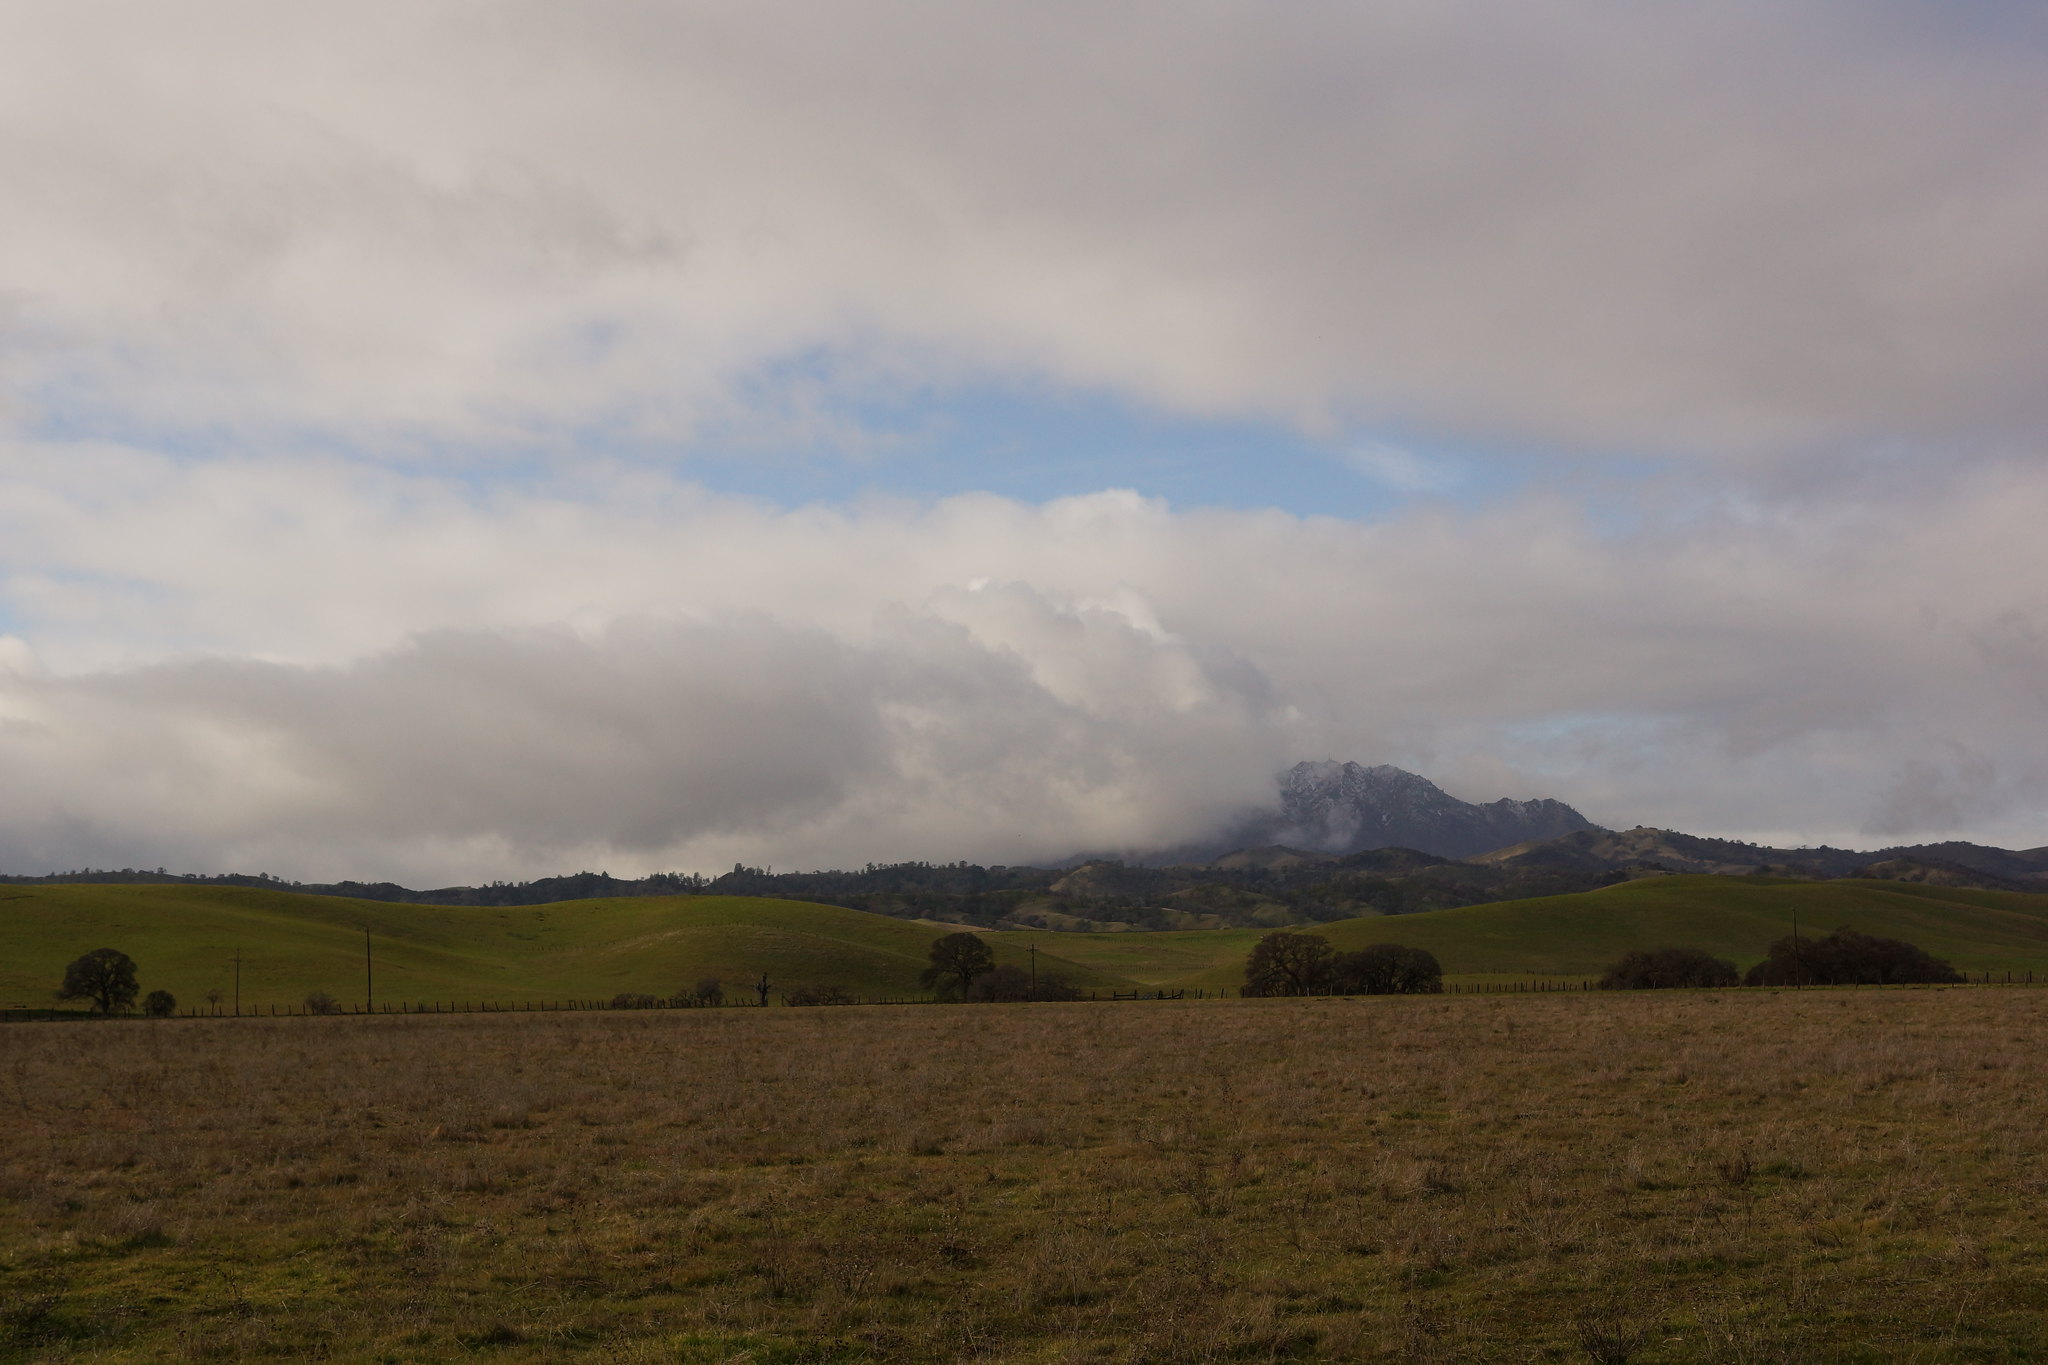 2017-01-02 Snow and Clouds on Mount Diablo (#1)